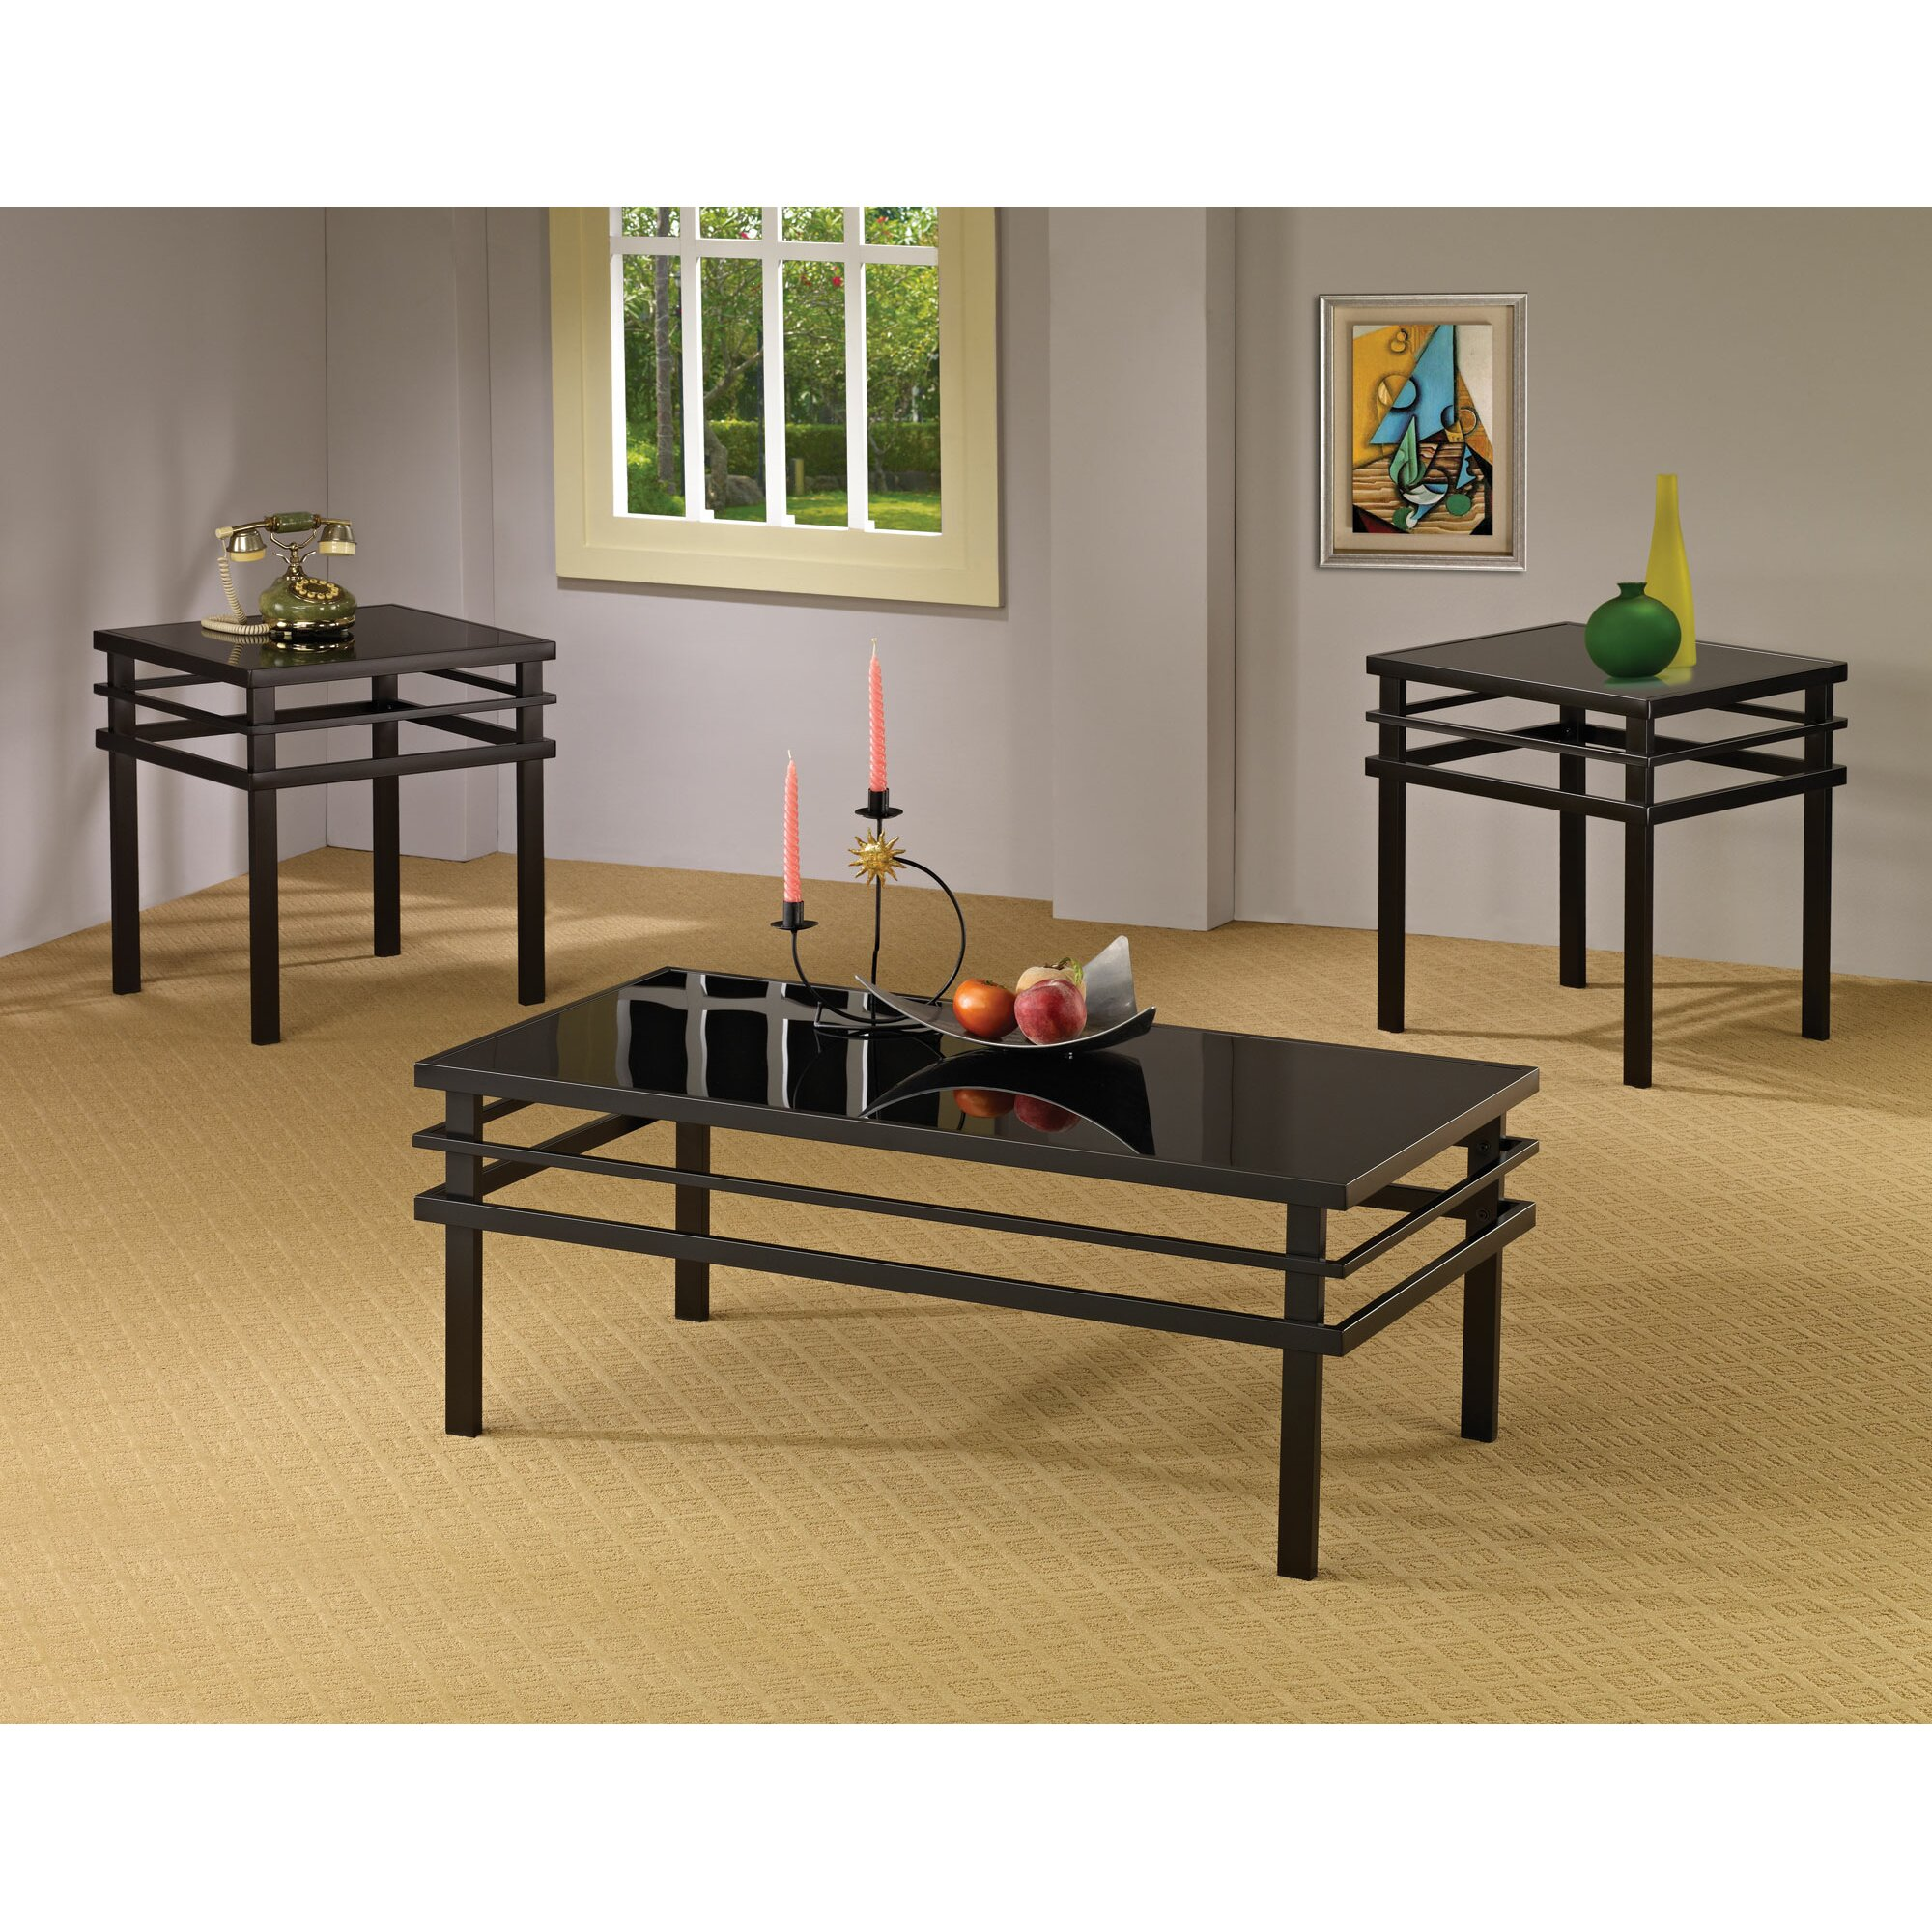 Wildon Home ® Bingham 3 Piece Coffee Table Set & Reviews